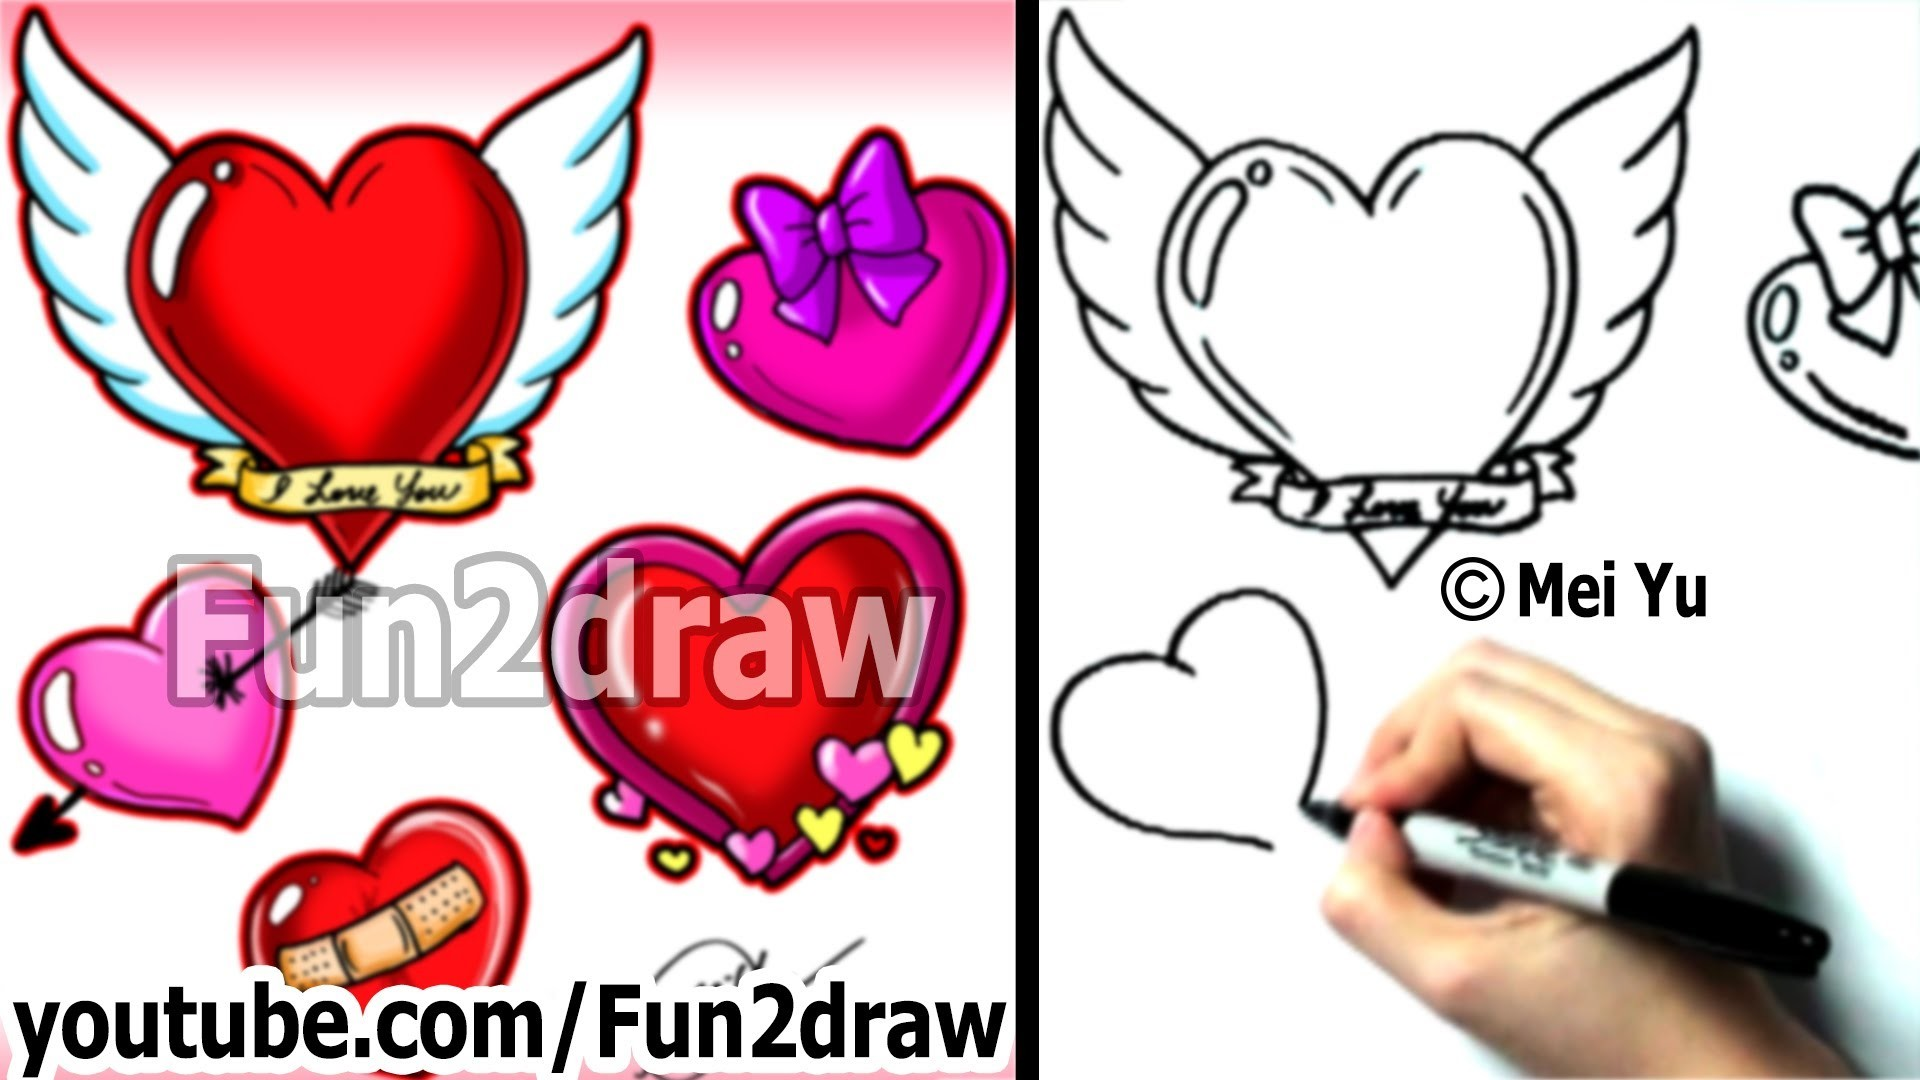 How to Draw a Heart, 5 Ways in 3 Min - How to Draw - Fun2draw